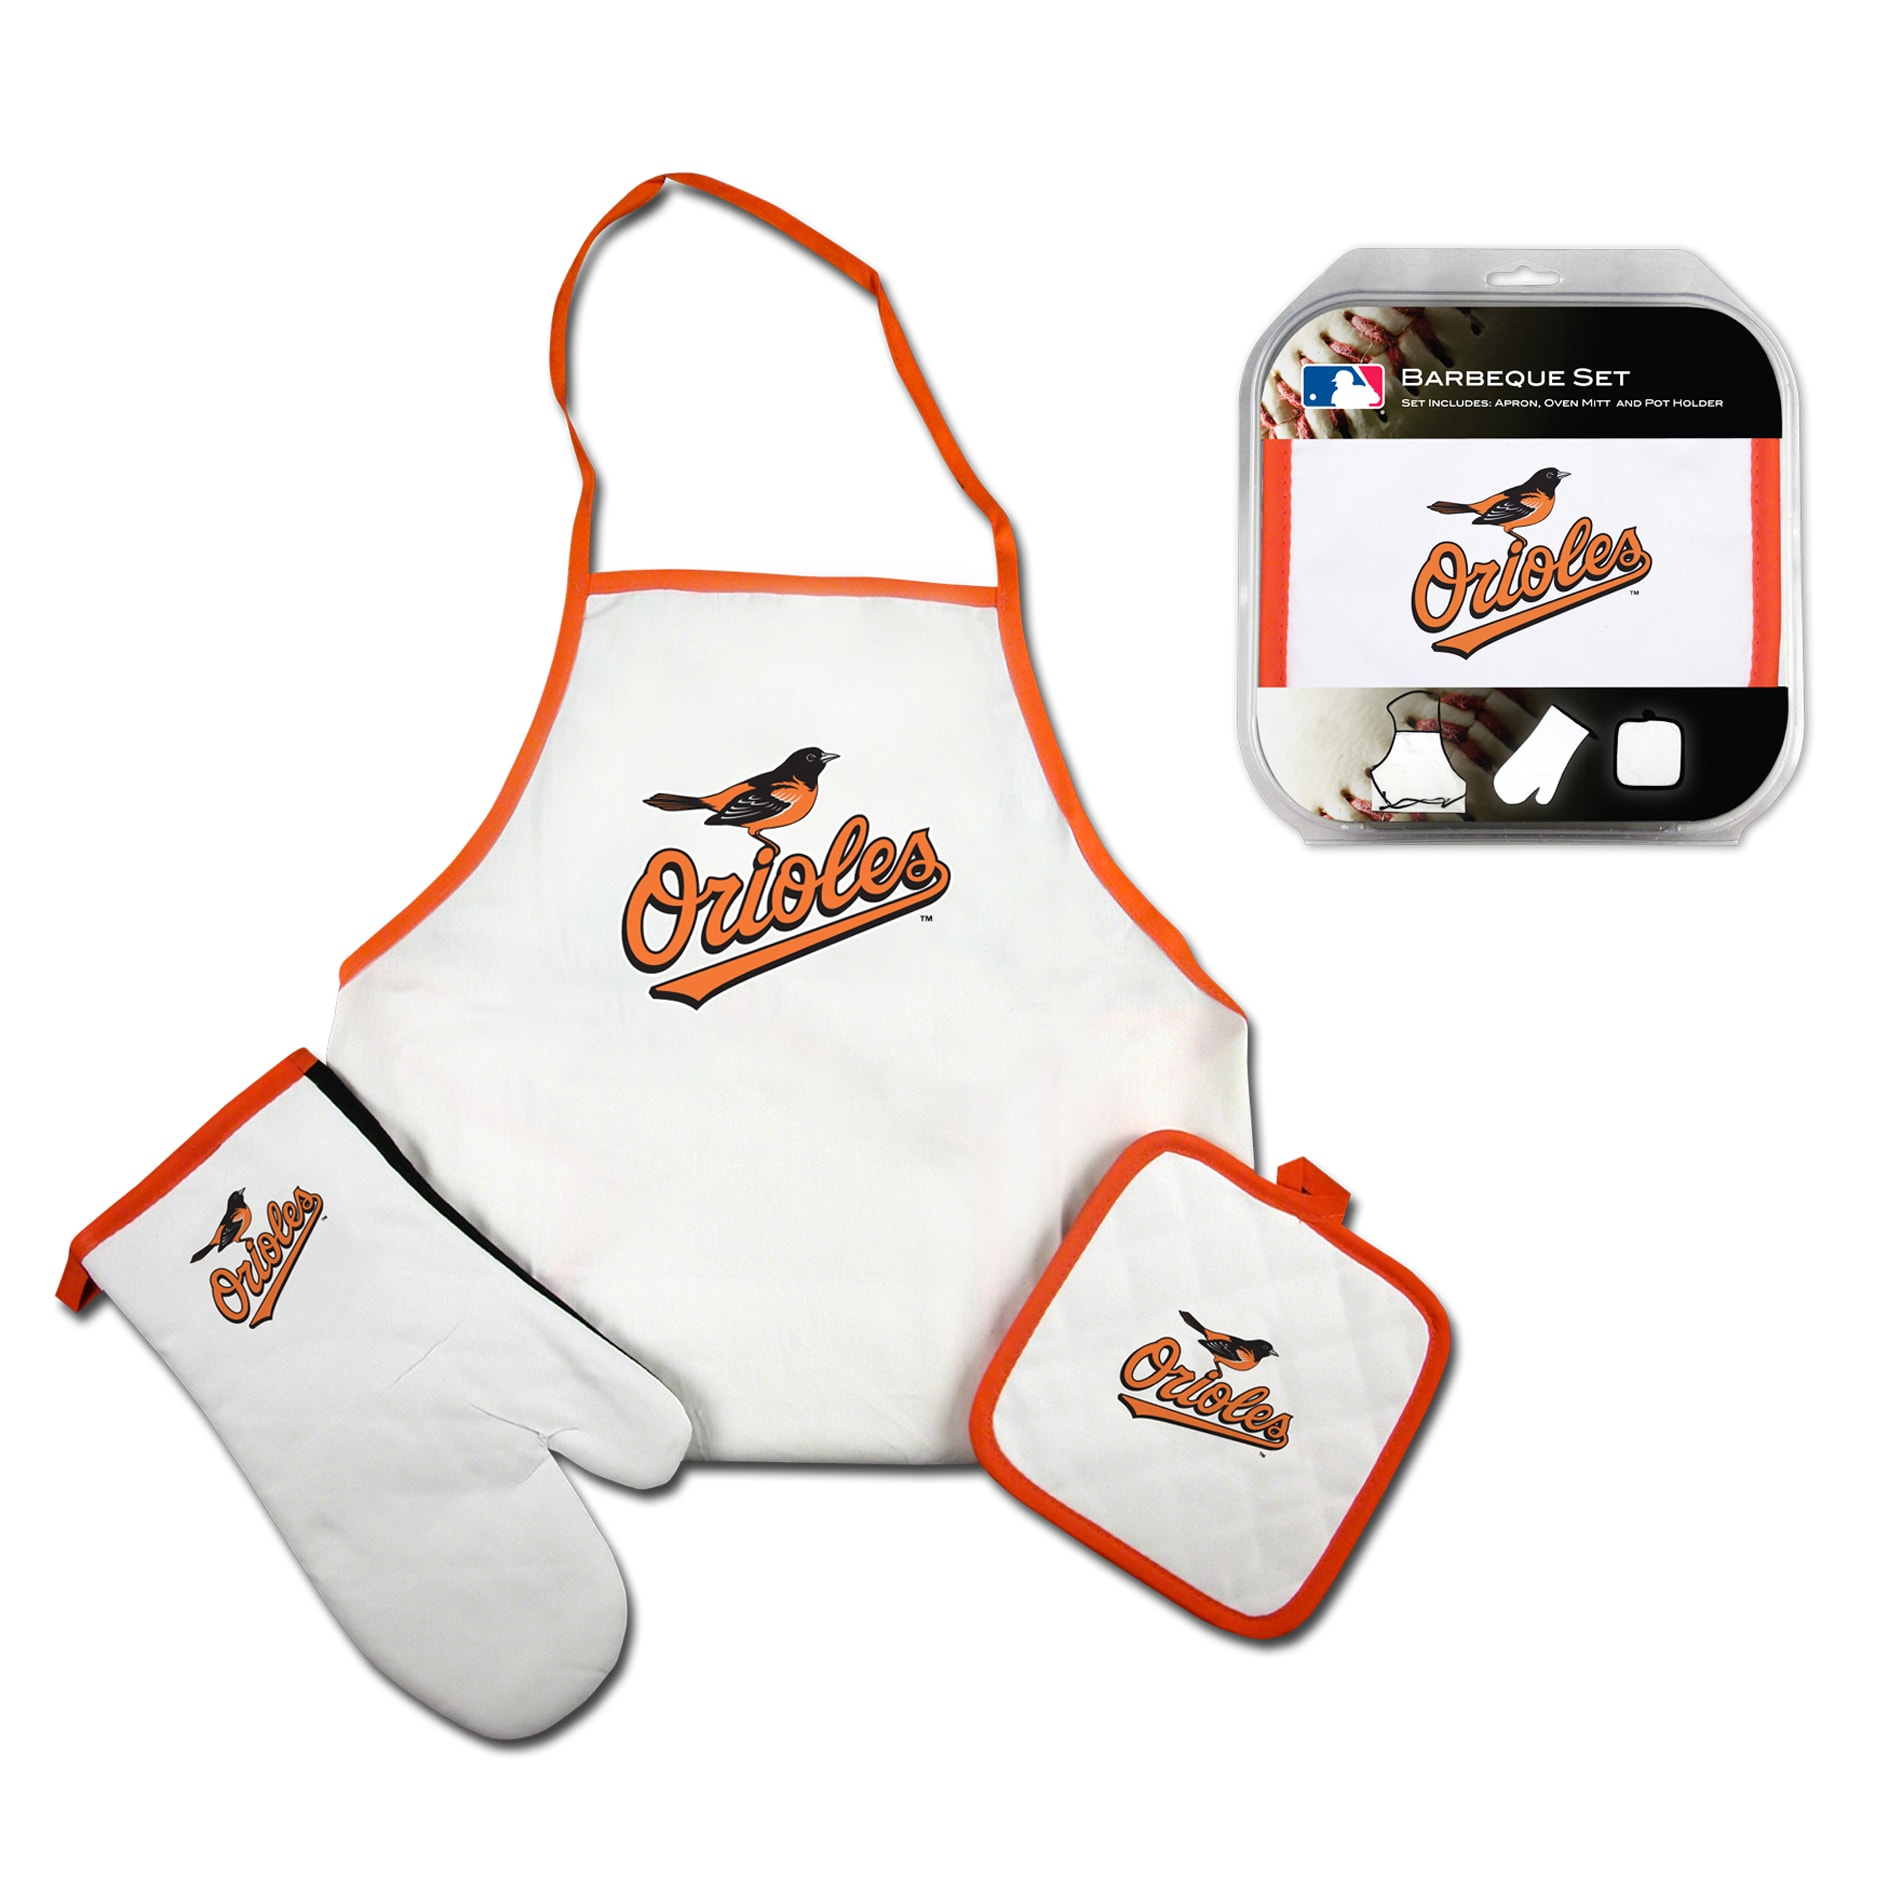 Baltimore Orioles 3-piece BBQ Set